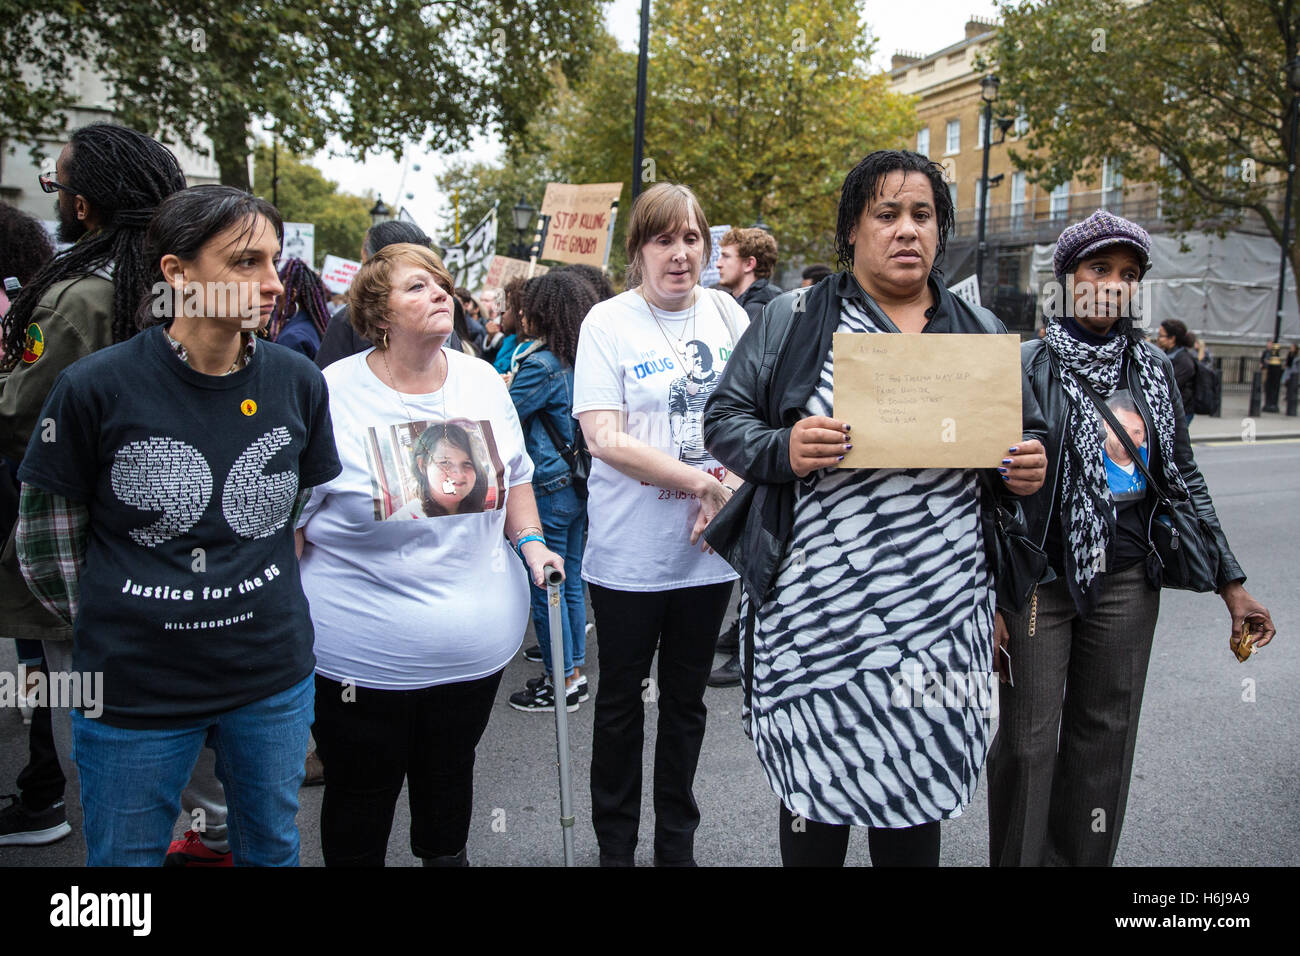 London, UK. 29th October, 2016. Family members from the United Families and Friends Campaign (UFFC) prepare to present - Stock Image